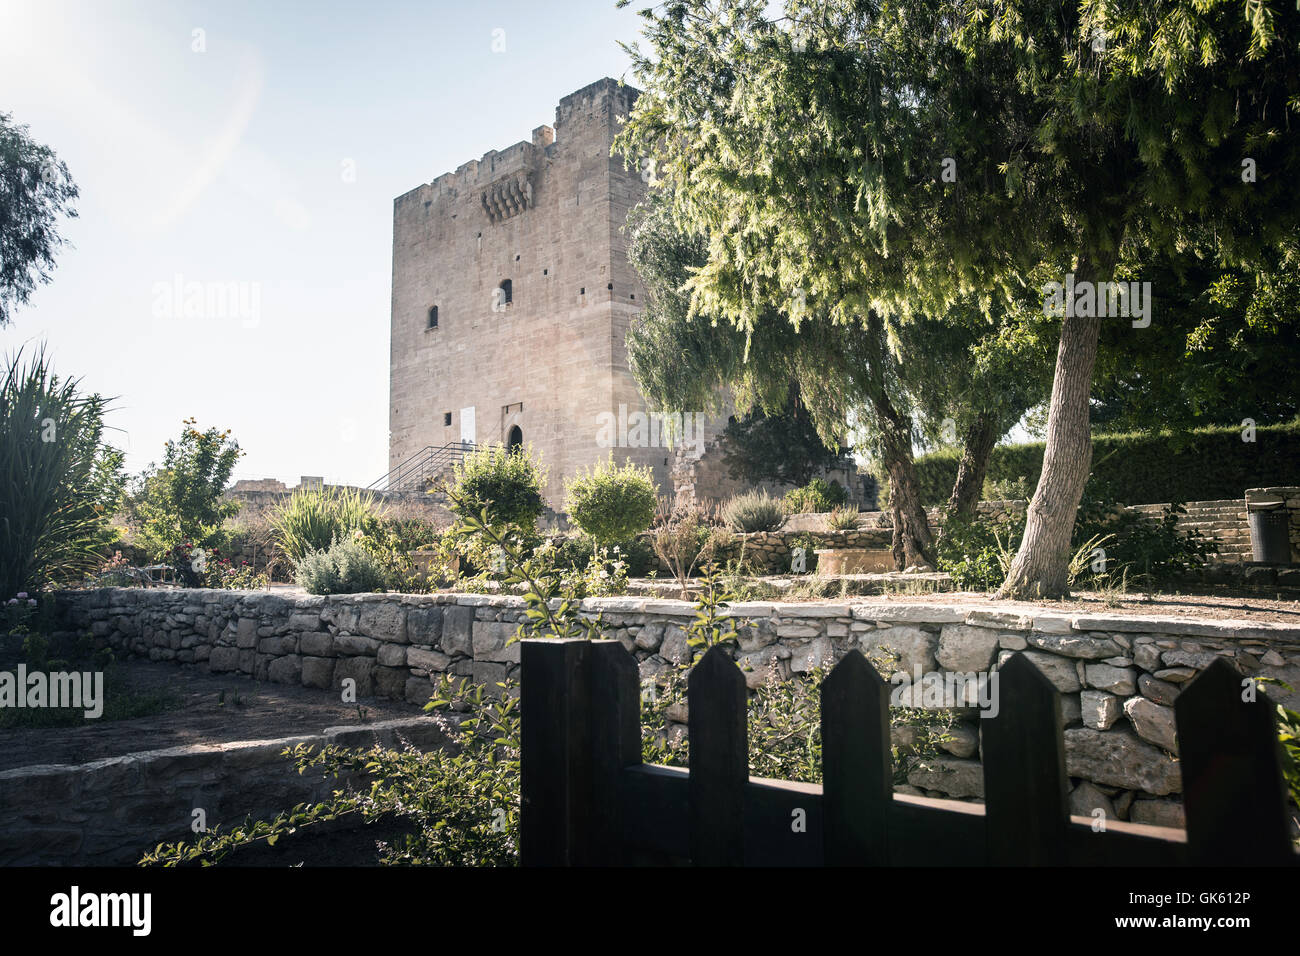 Kolossi Castle in Cyprus. - Stock Image